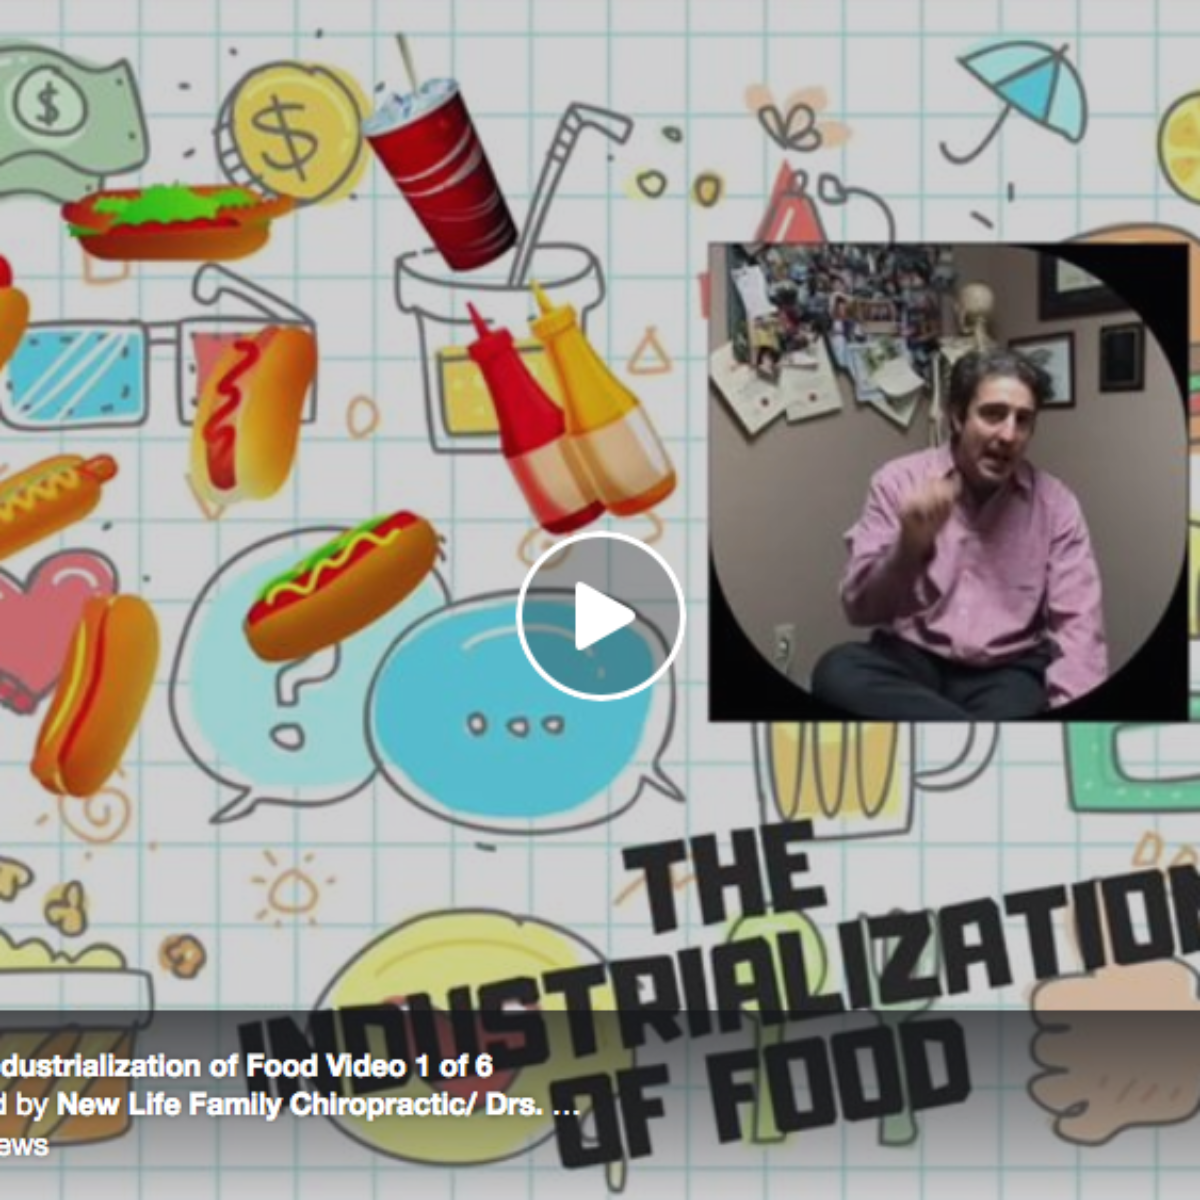 Industrialization of Food: Video 1